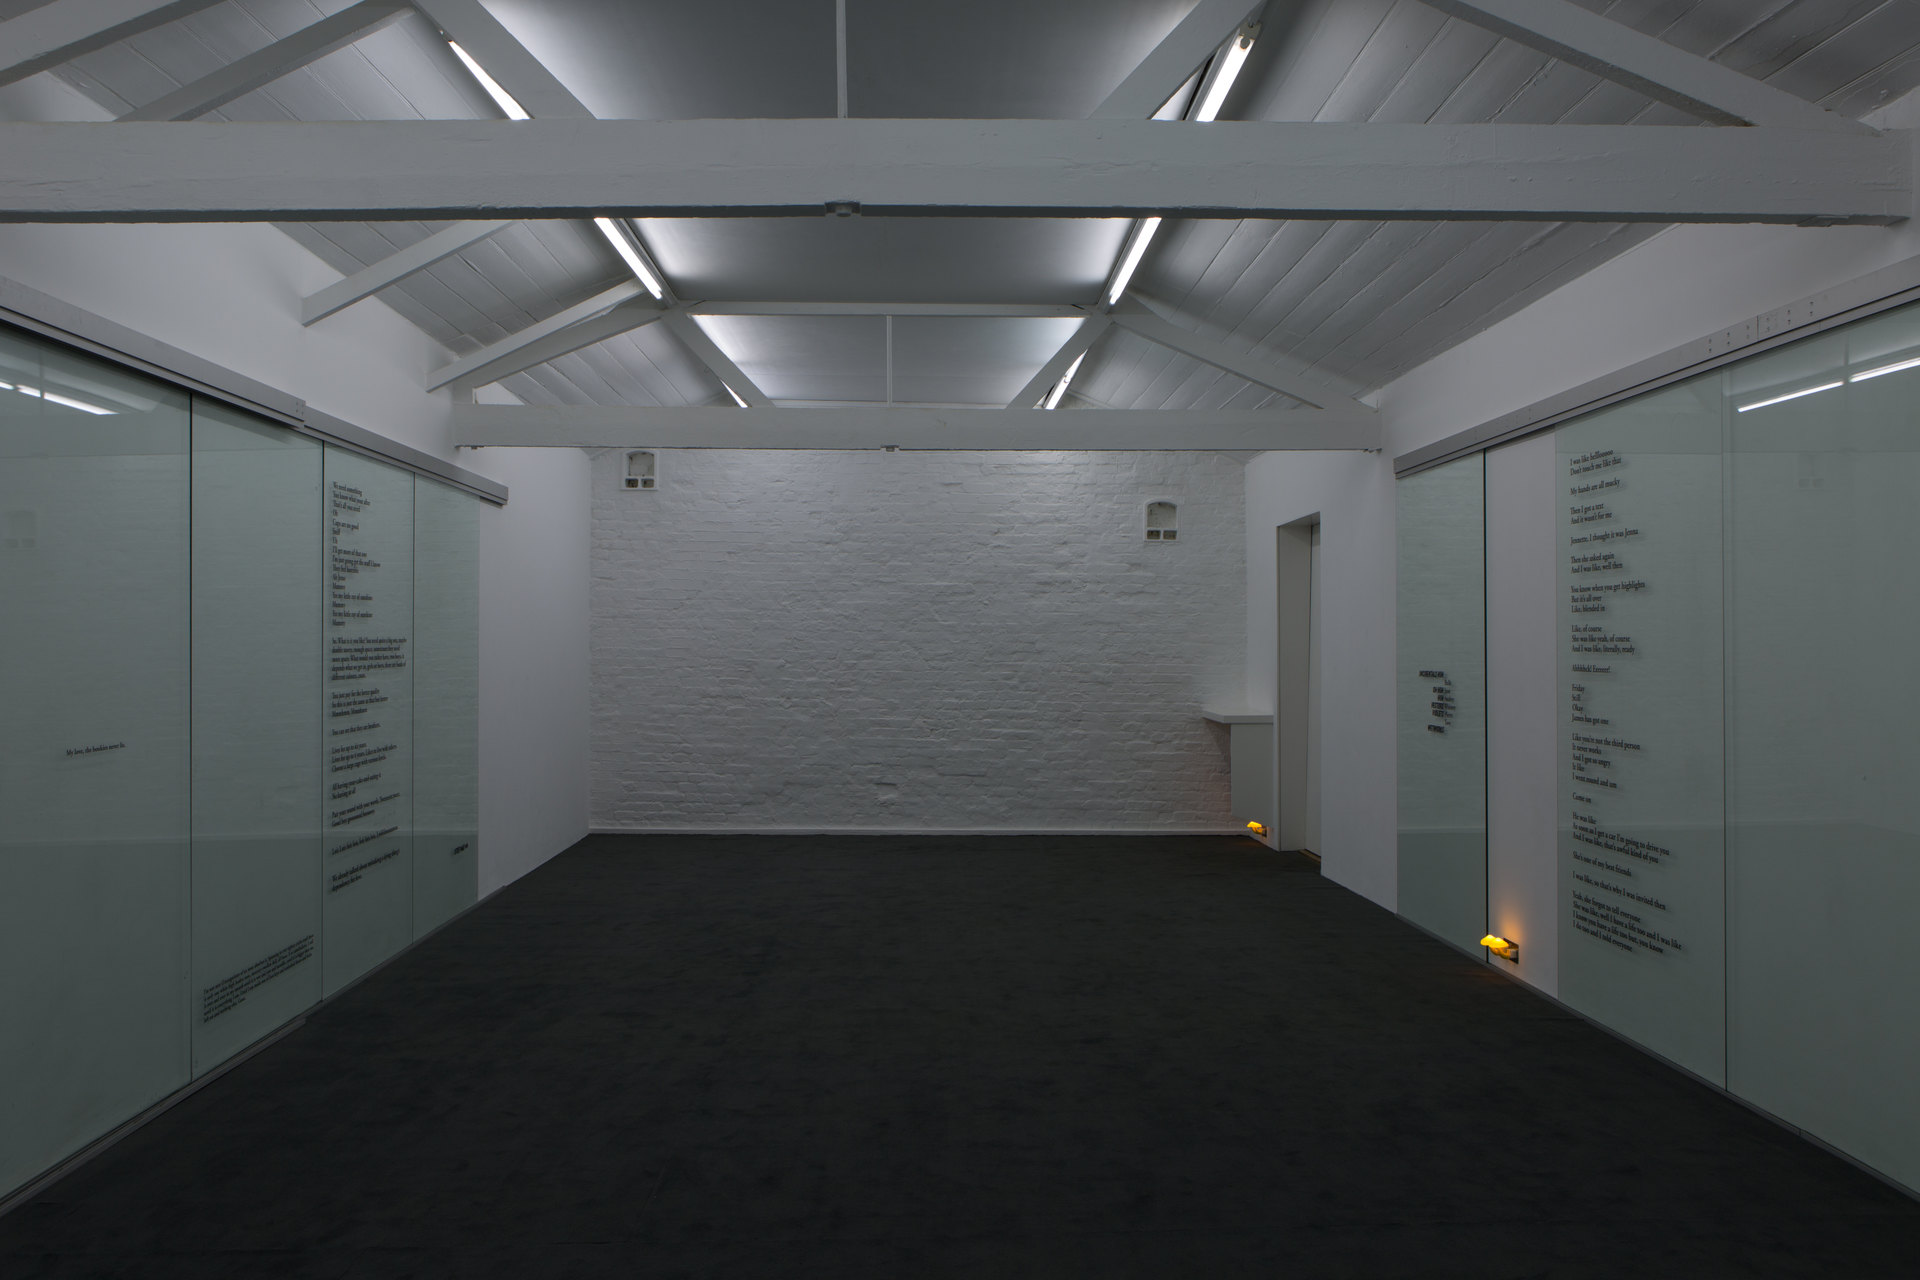 Ghislaine Leung, The Moves, Installation View, 2017, Cell Project Space